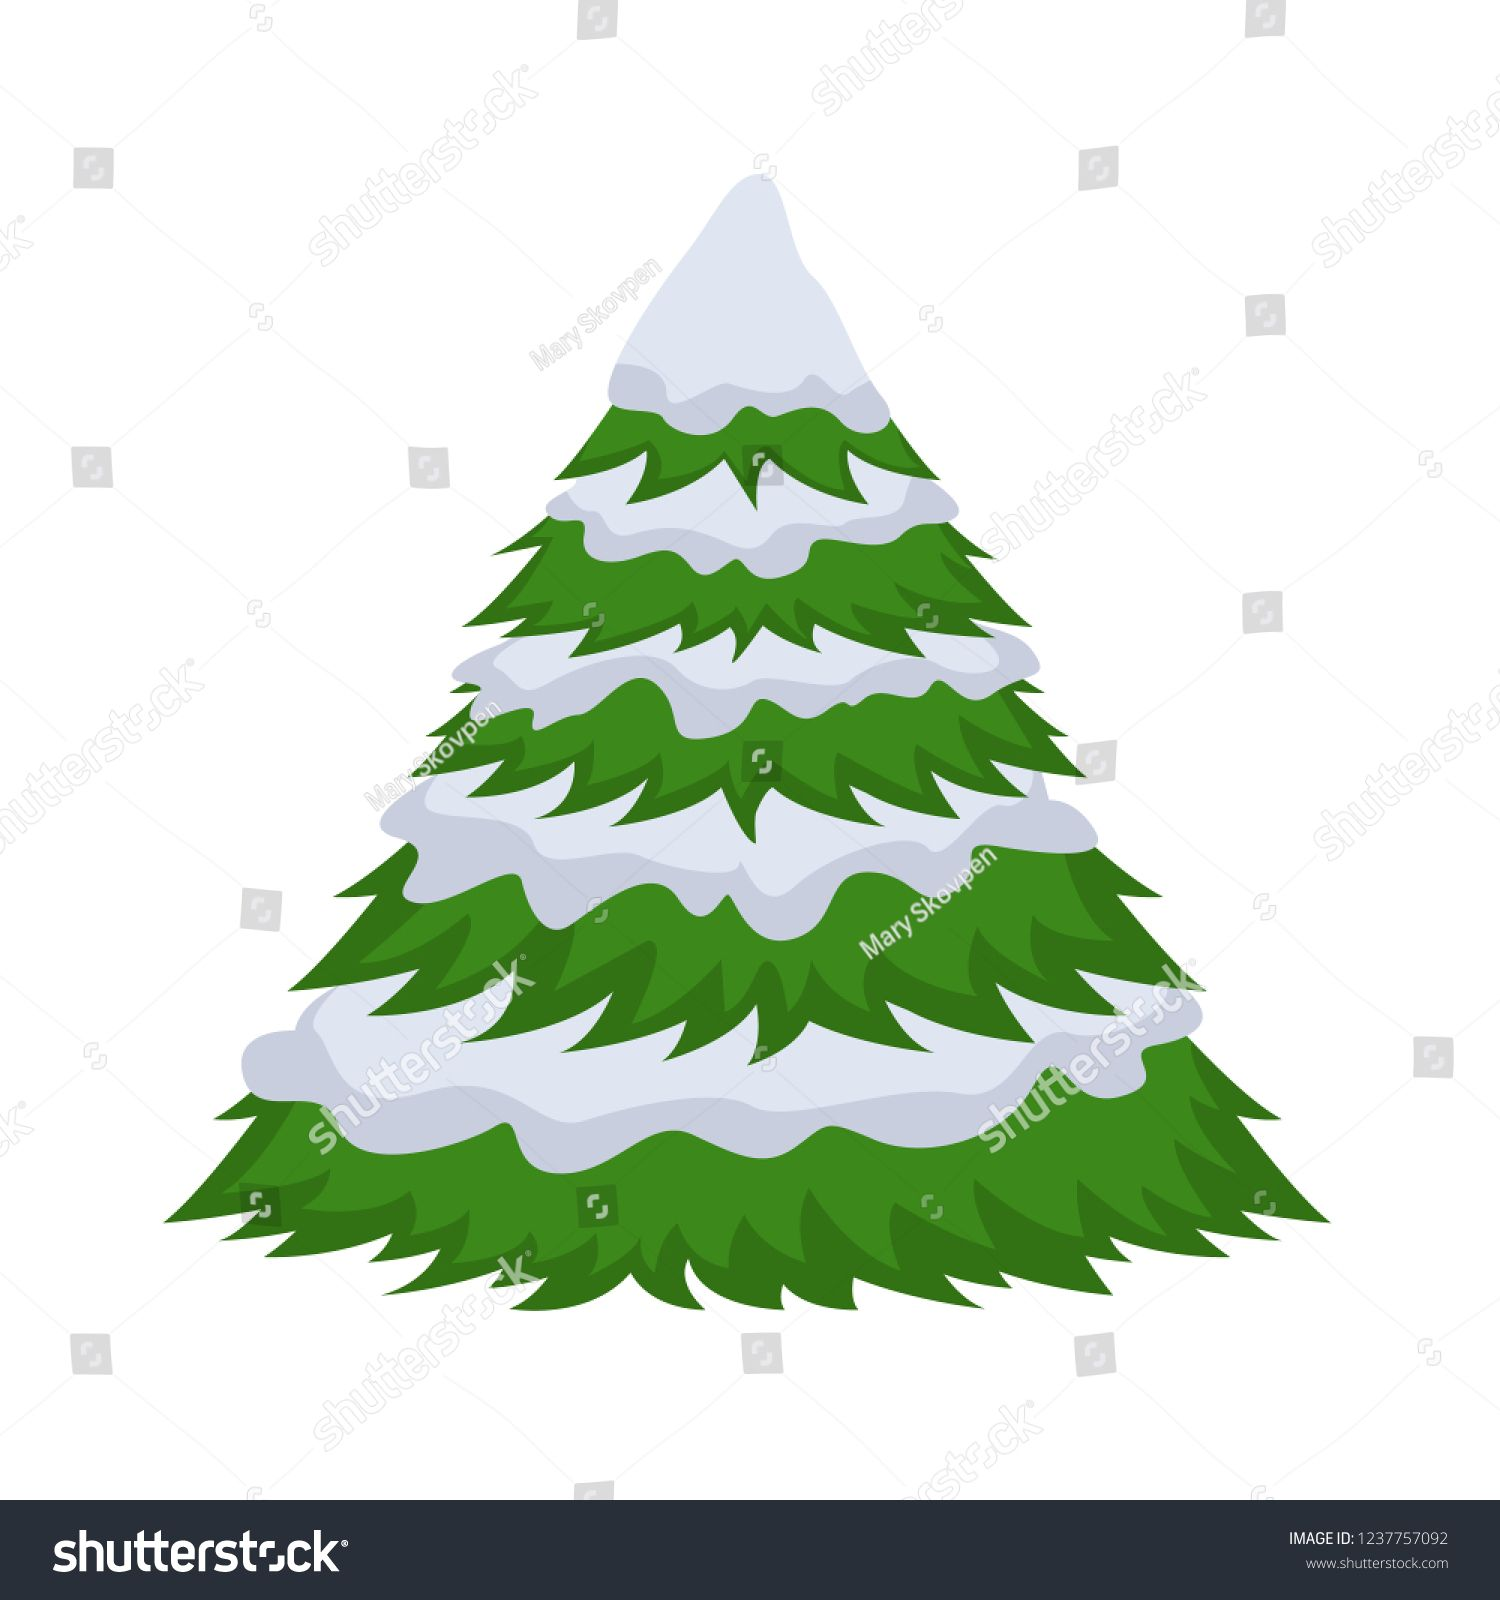 Christmas Tree In The Snow On A White Background Cartoon Flat Vector Illustration Christmas Tree White Background Christmas